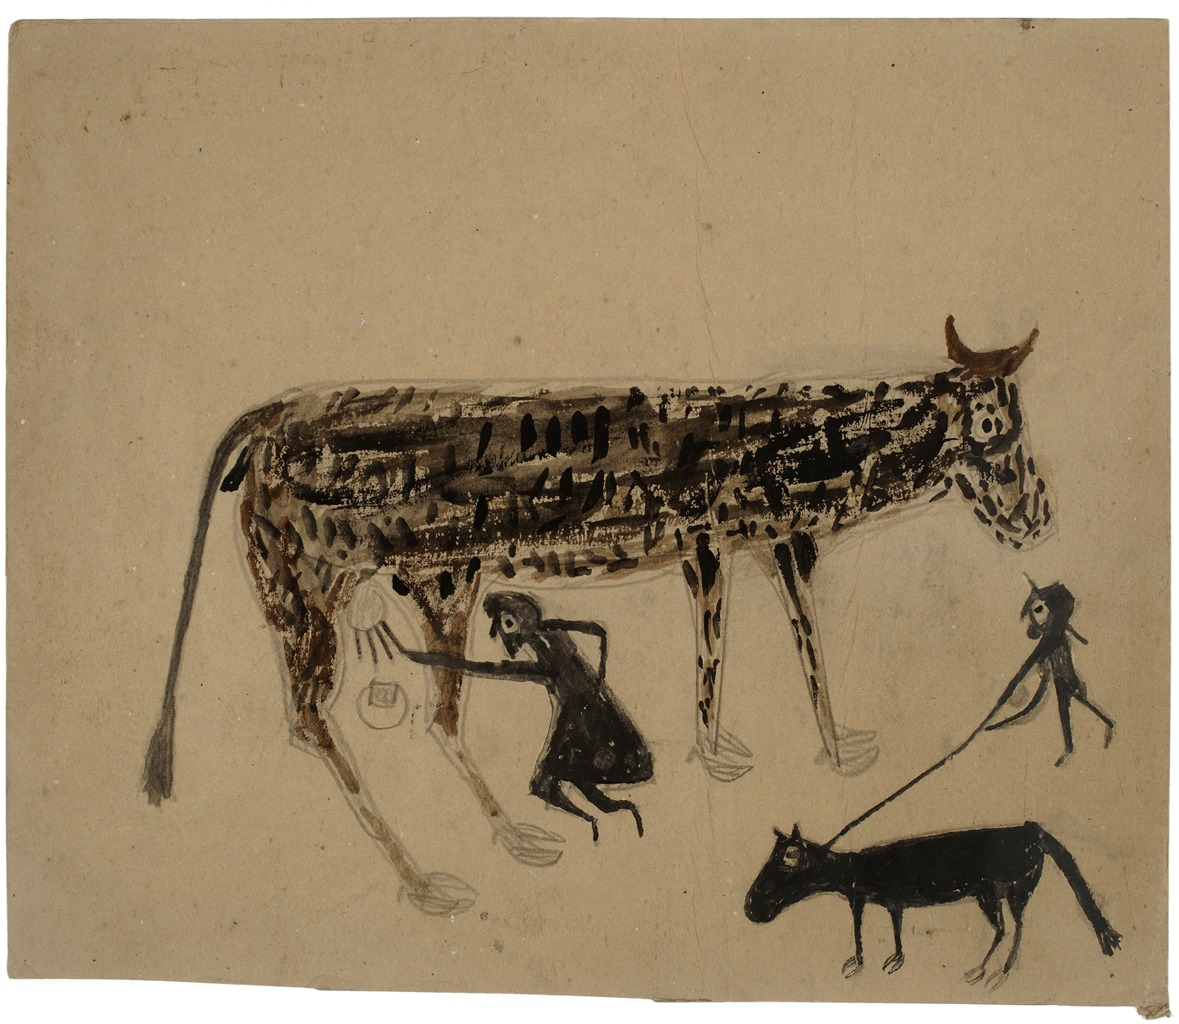 Bill-Traylor_untitled-Milking_c.1939-42_poster-paint-graphite-on-cardboard_Self-Taught-African-American-artist_Ricco--Maresca-Gallery-New-York-City_new